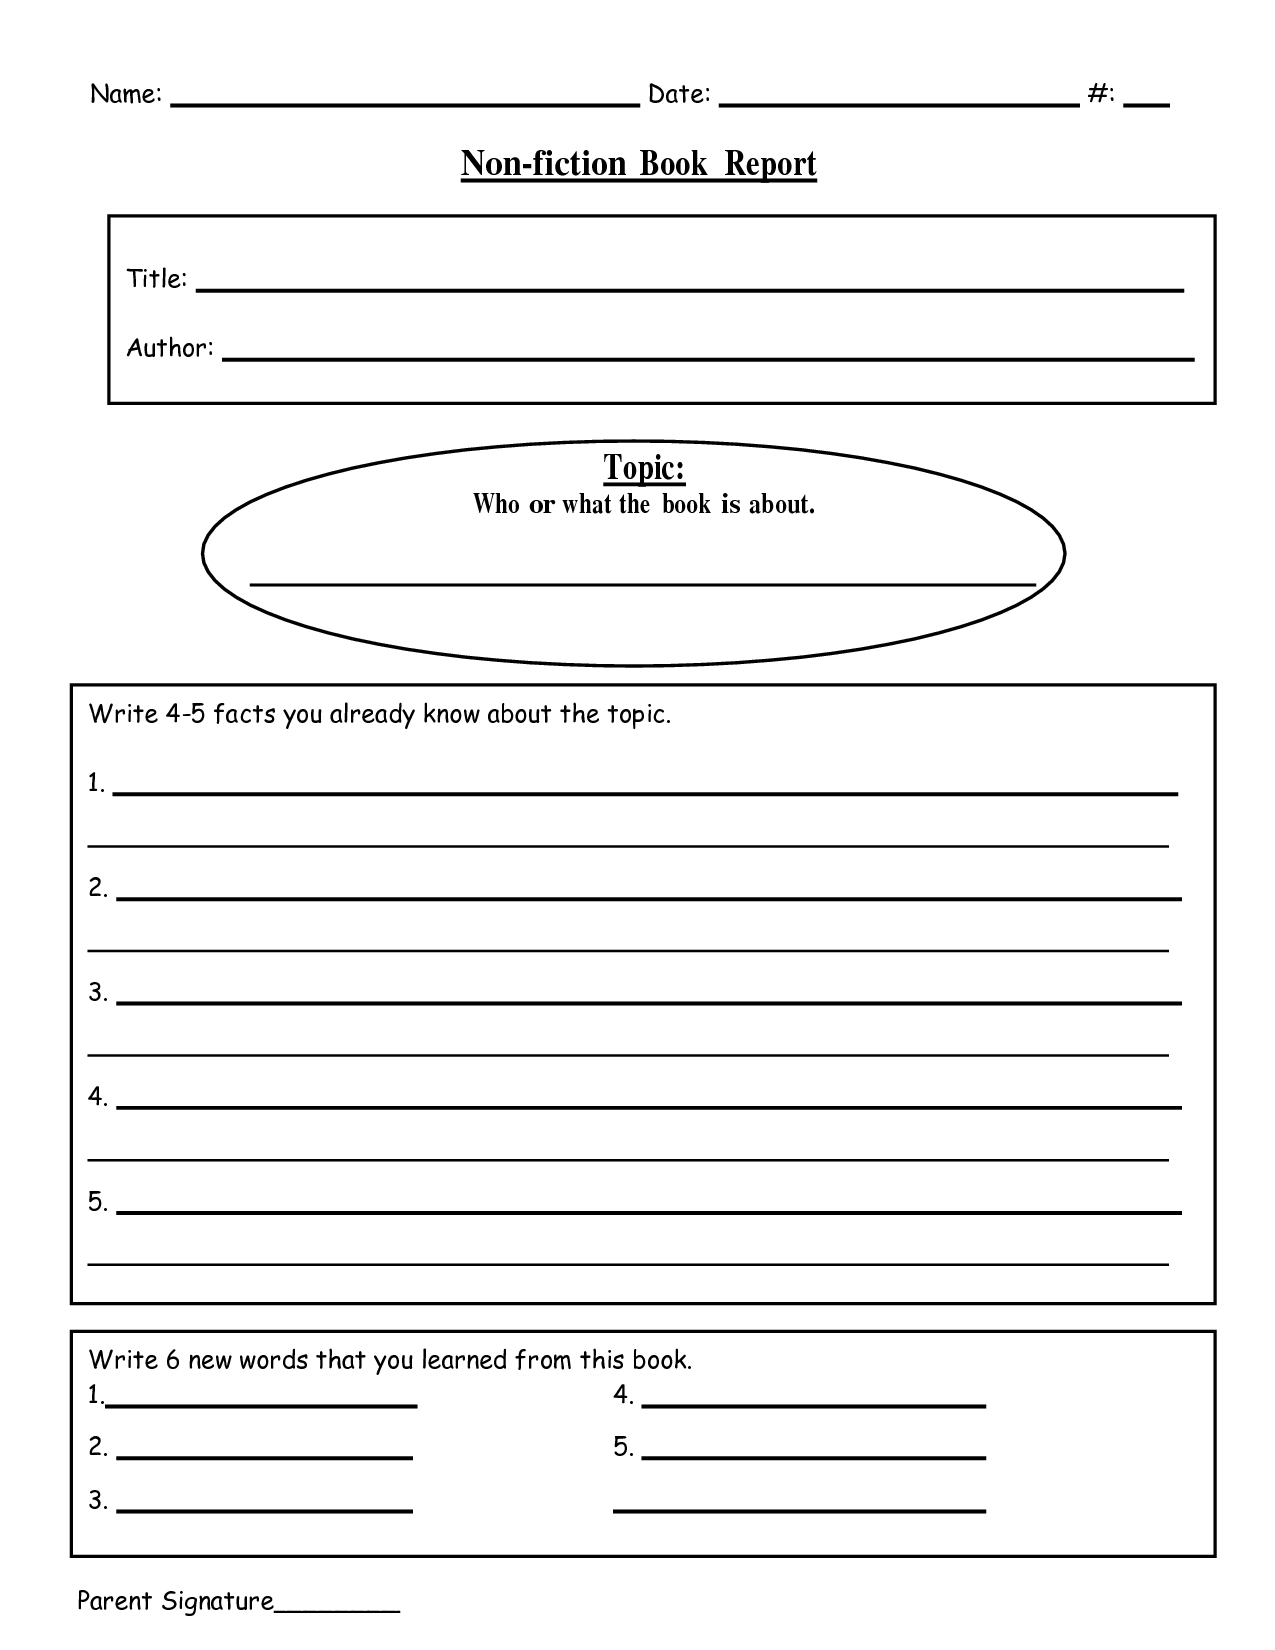 Free Printable Book Report Templates | Non-Fiction Book Report.doc - Free Printable Story Books For Grade 2